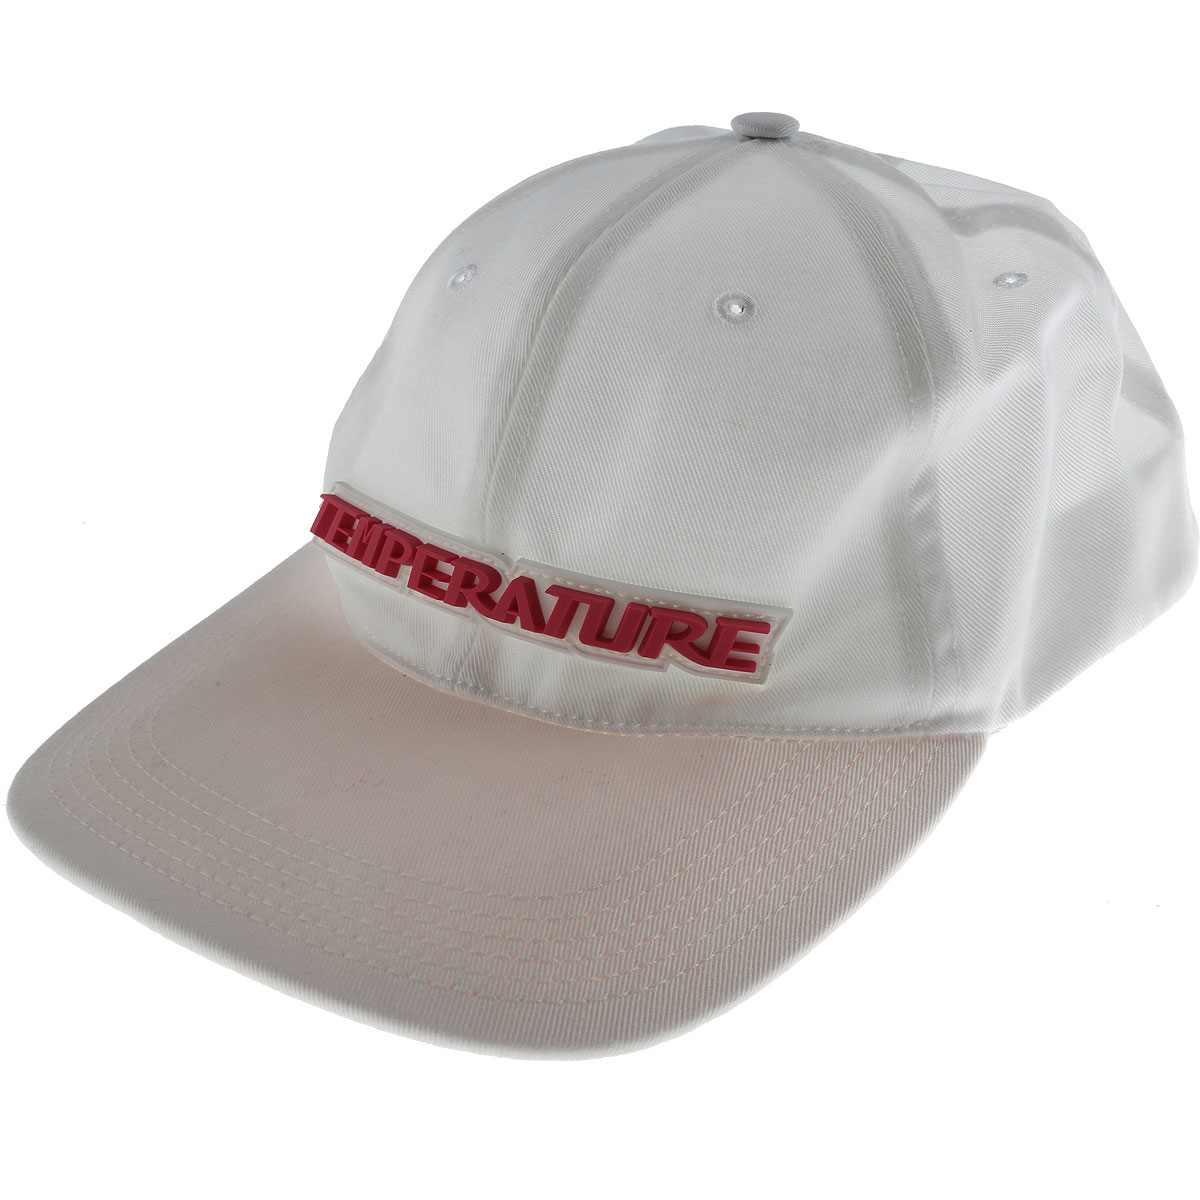 Off-White Virgil Abloh Hat for Women in Outlet White Canada - GOOFASH - Mens HATS